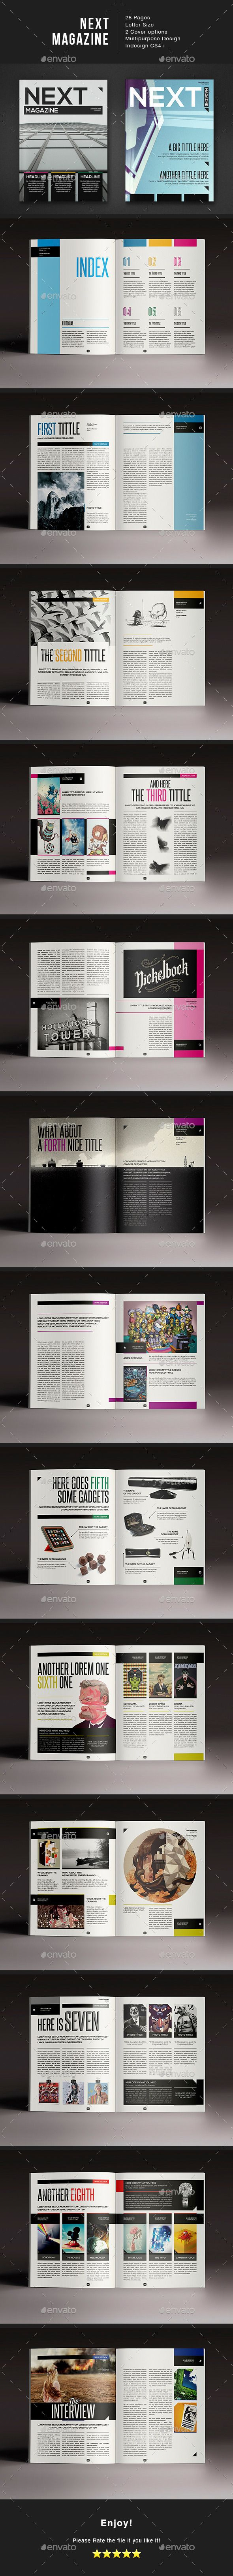 Next Magazine — InDesign Template #job #next • Download ➝ https://graphicriver.net/item/next-magazine-indesign-template/14445344?ref=pxcr